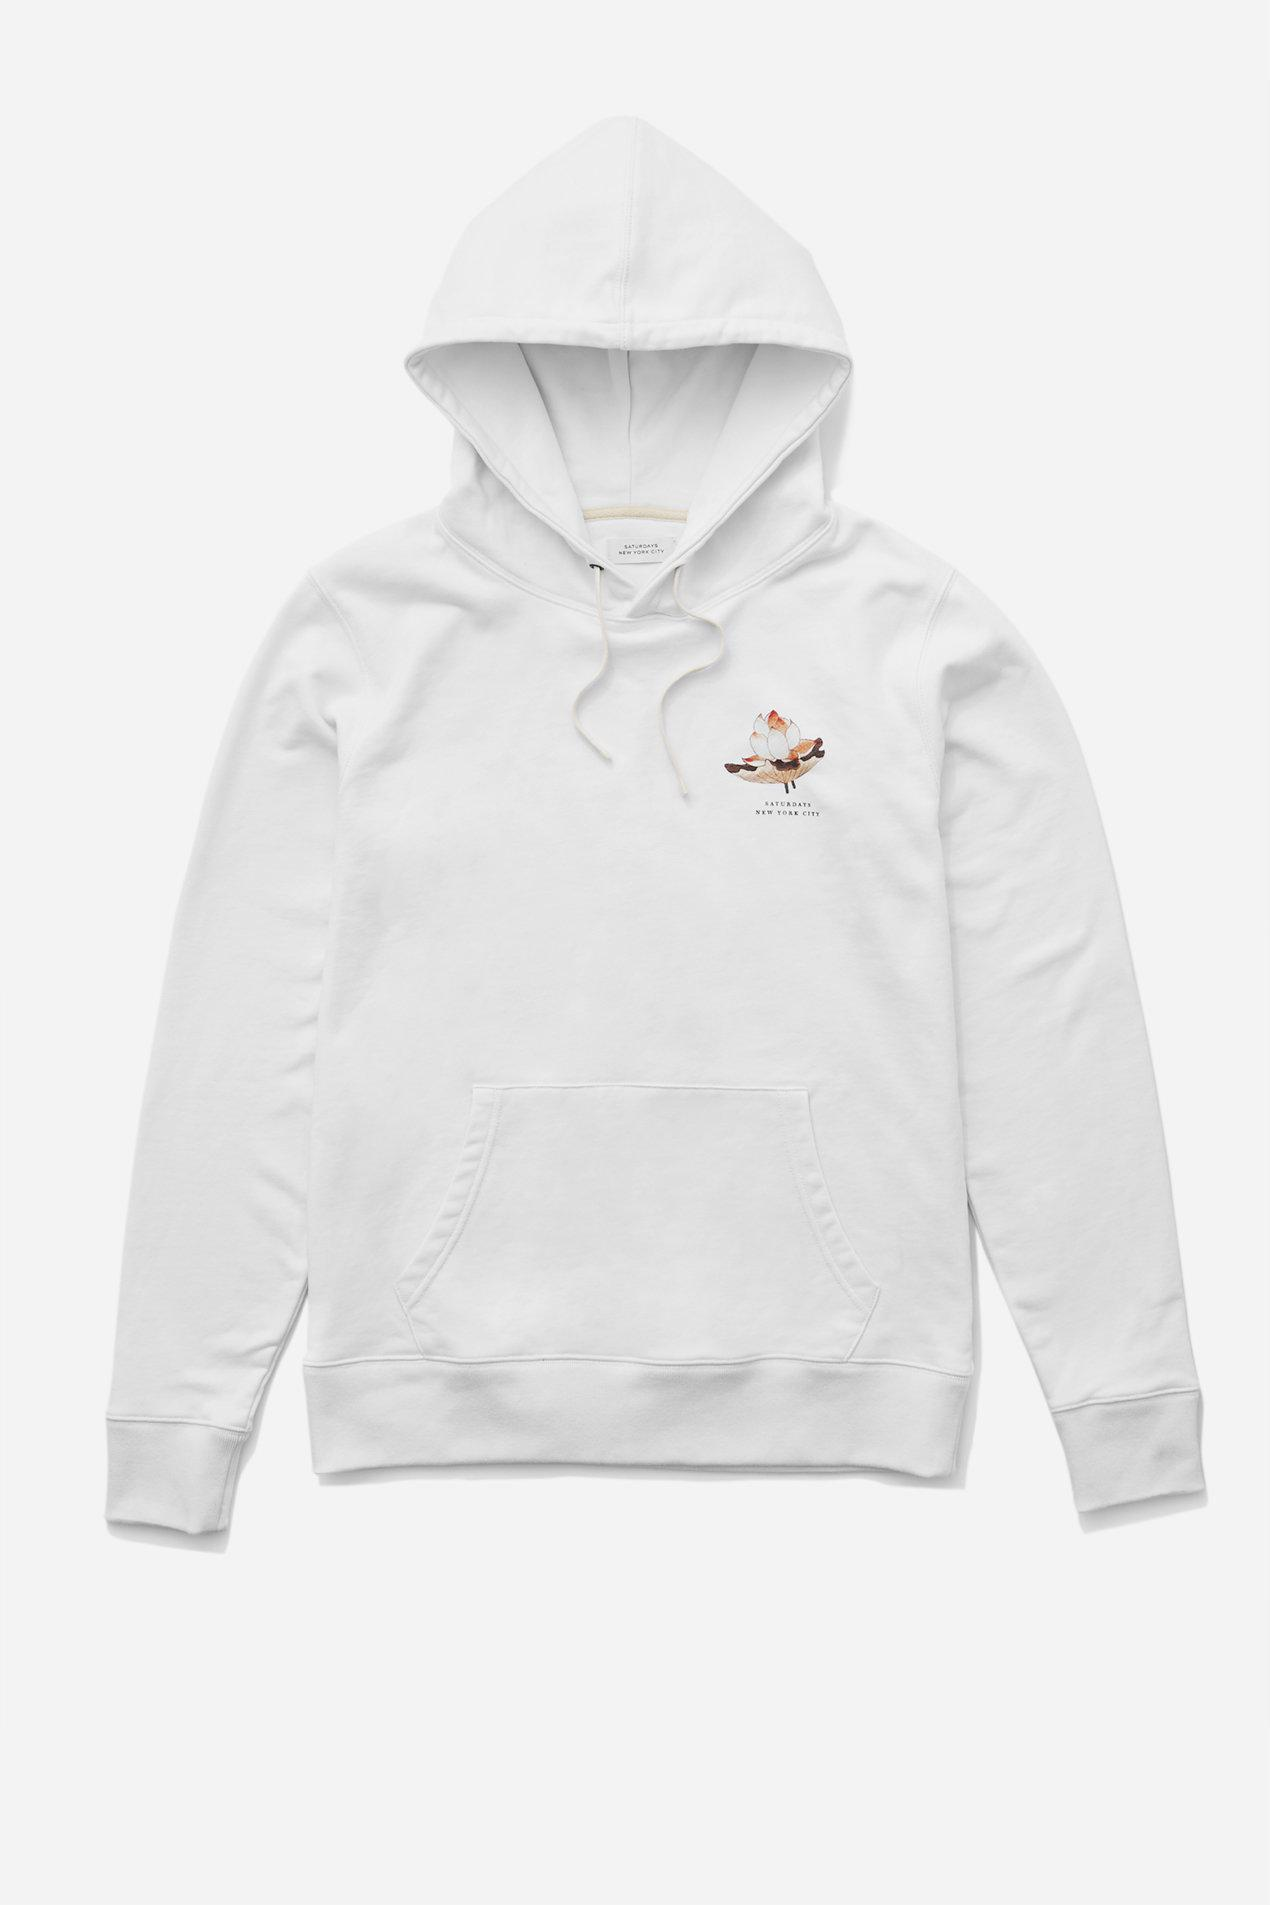 Saturdays Nyc Ditch Lotus Flower Hooded Sweatshirt In White For Men